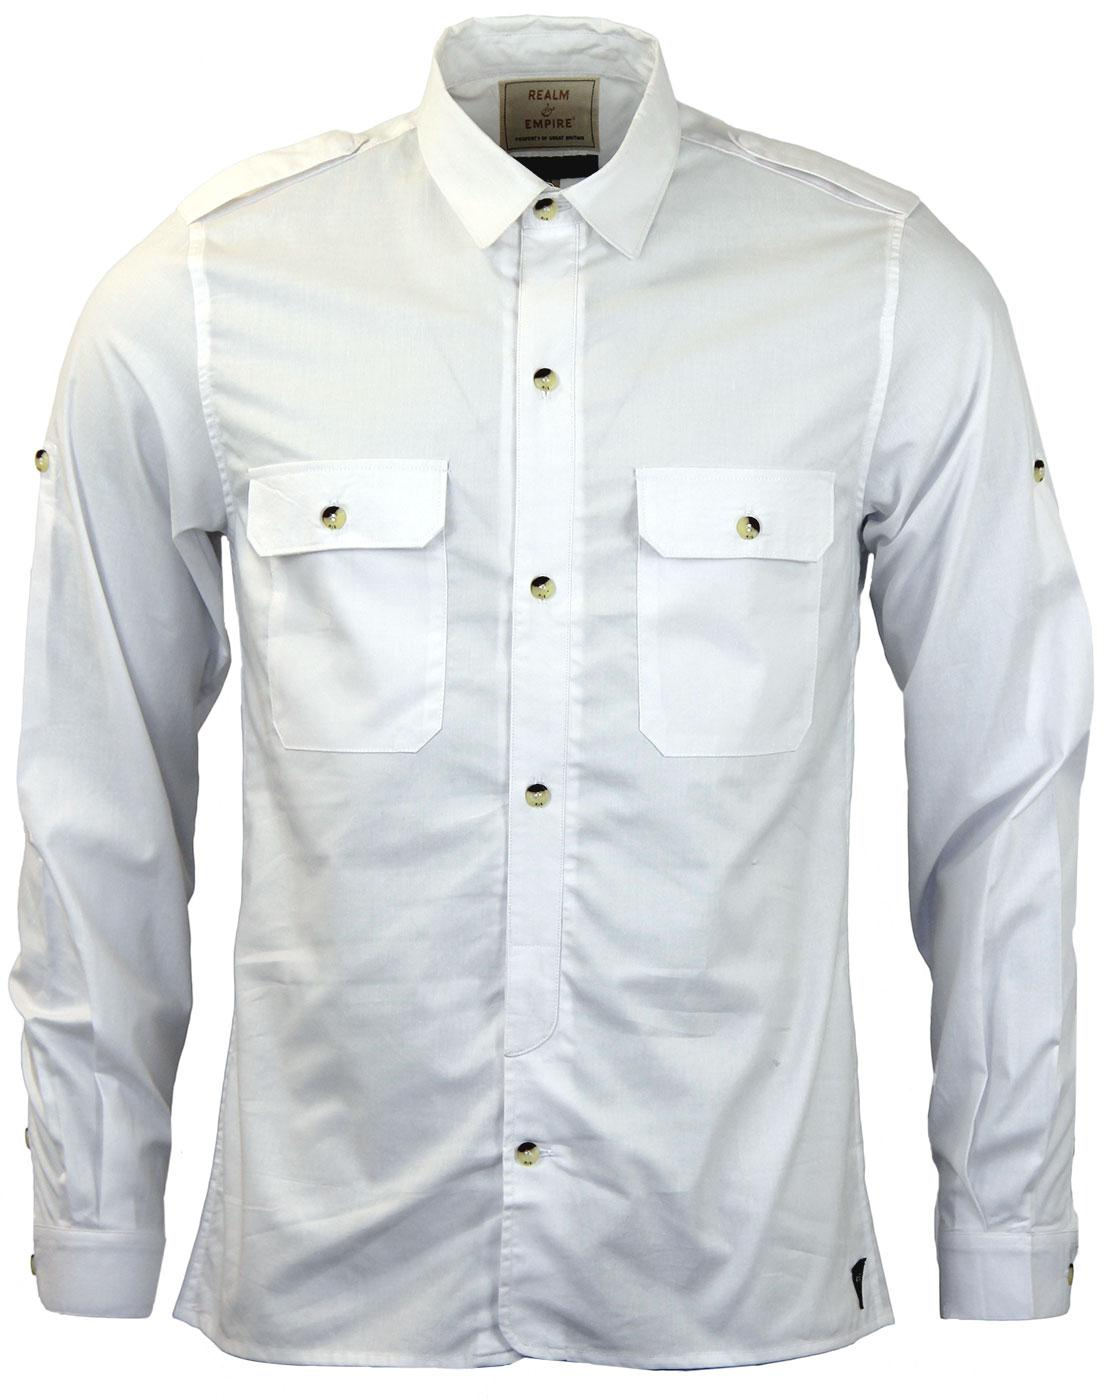 Wittering REALM & EMPIRE Demob Military Shirt